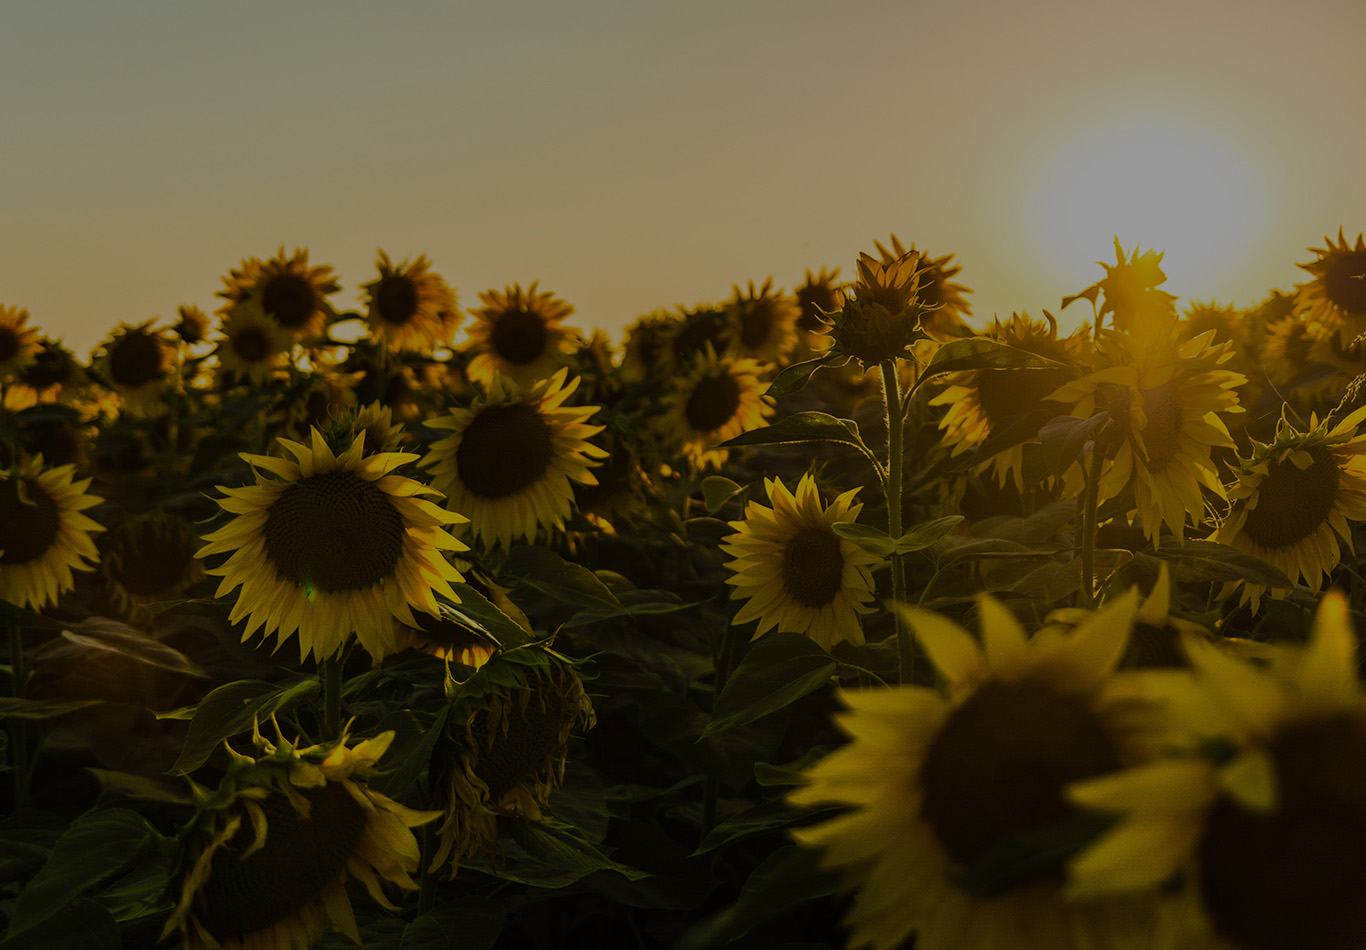 A grove of sunflowers with the sun in the background